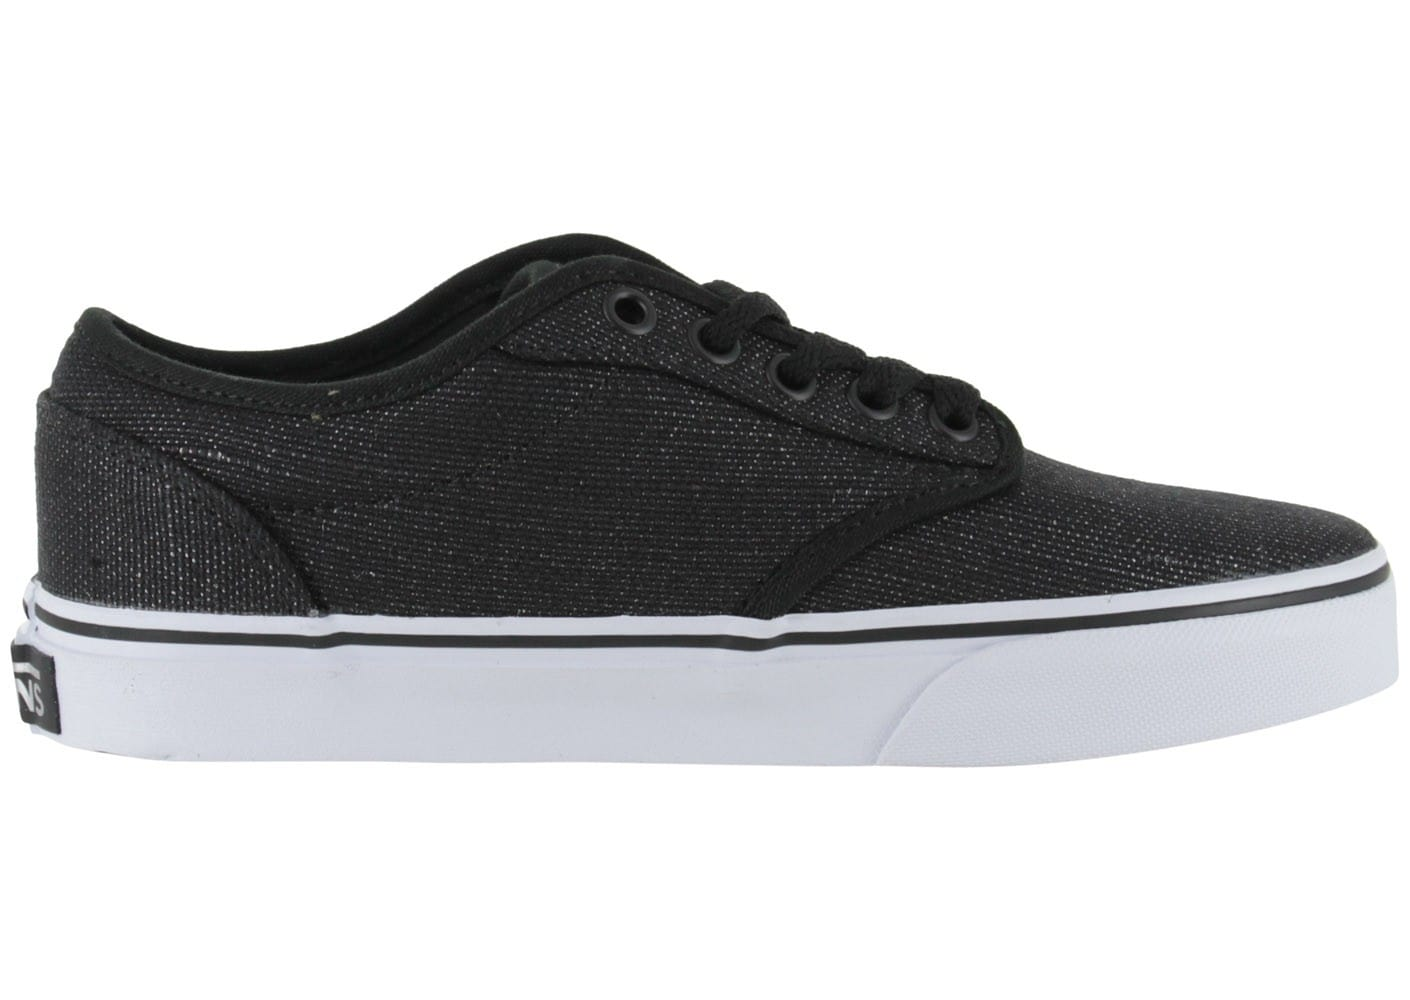 vans atwood low noir brillant chaussures chaussures chausport. Black Bedroom Furniture Sets. Home Design Ideas